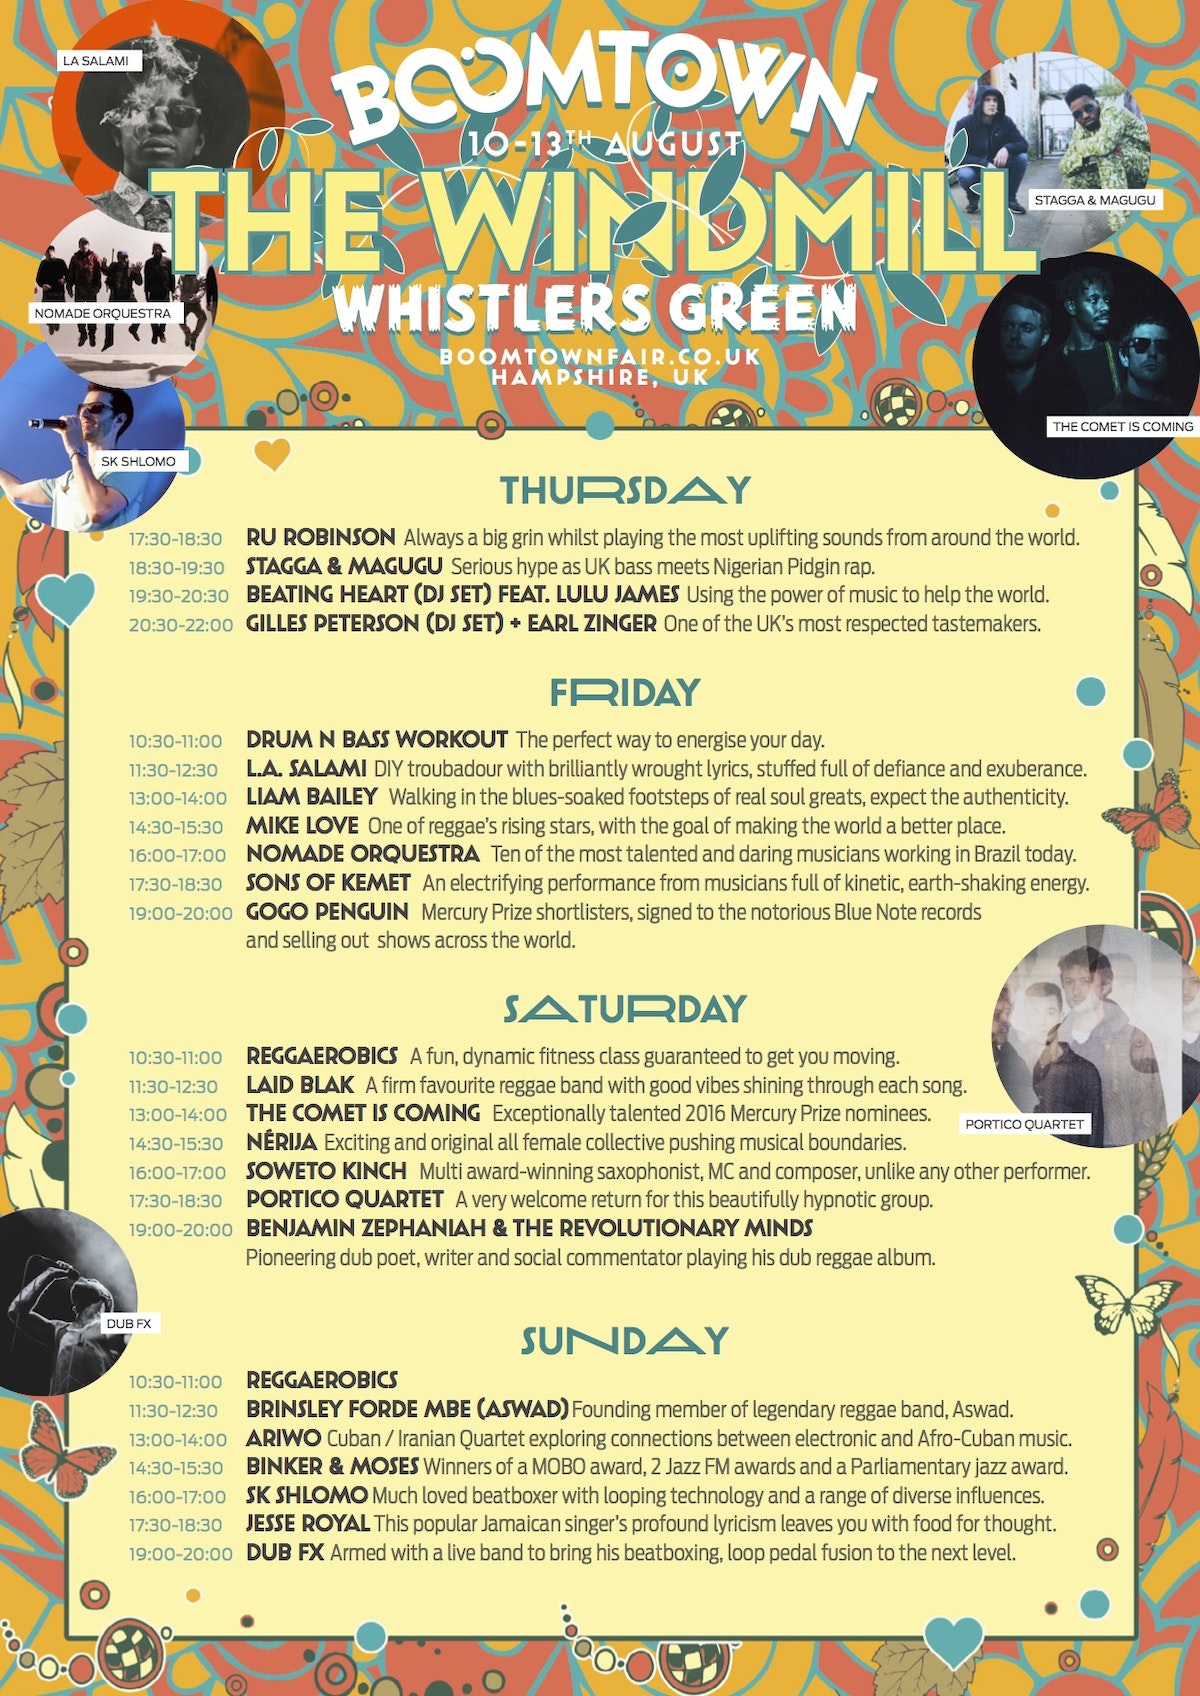 The Windmill - Full Line Up!